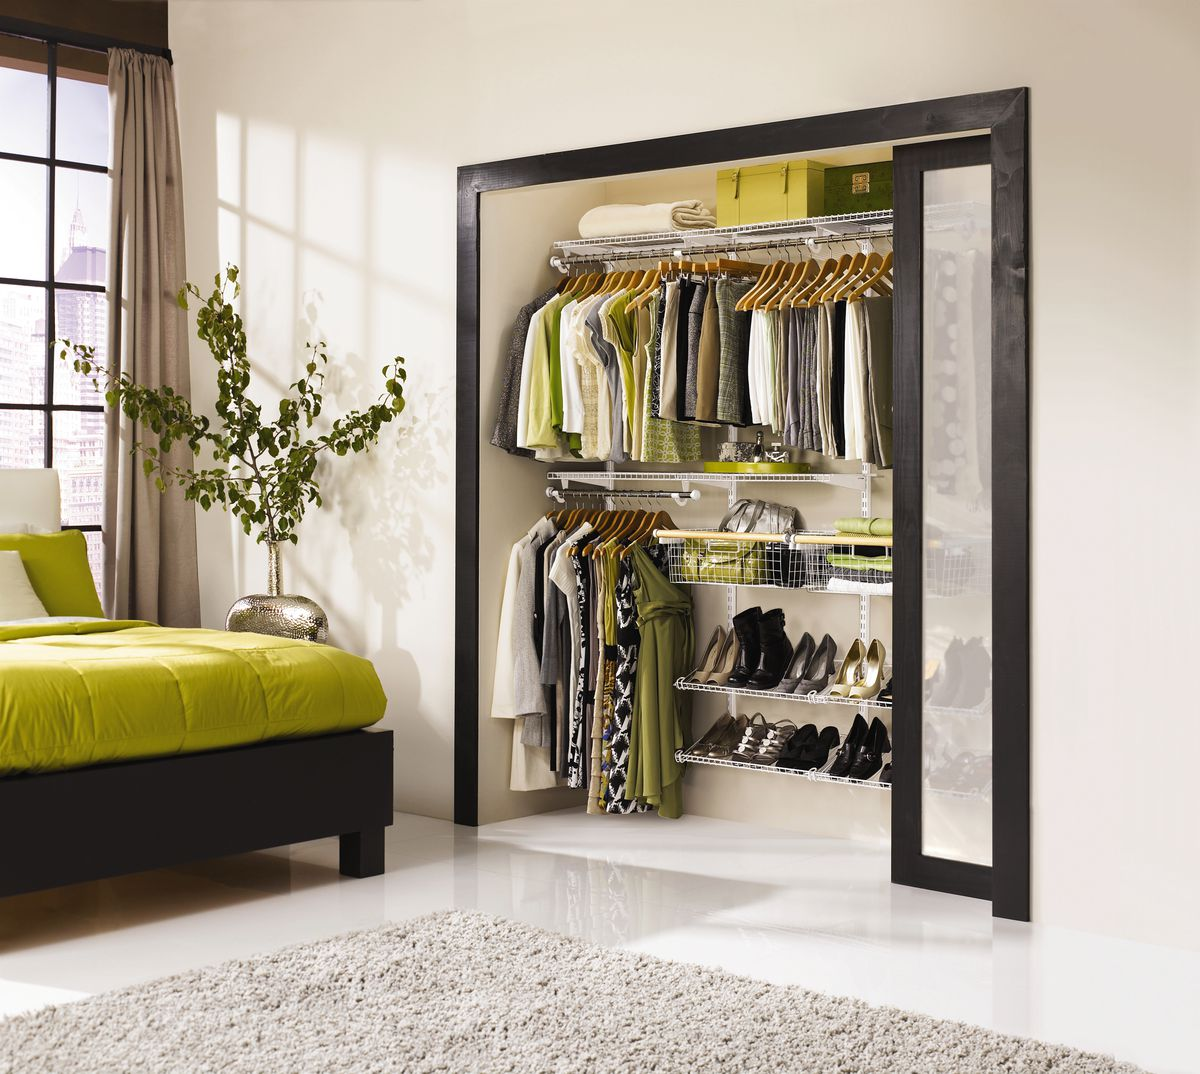 Read This Before You Redo Your Bedroom Closet This Old House